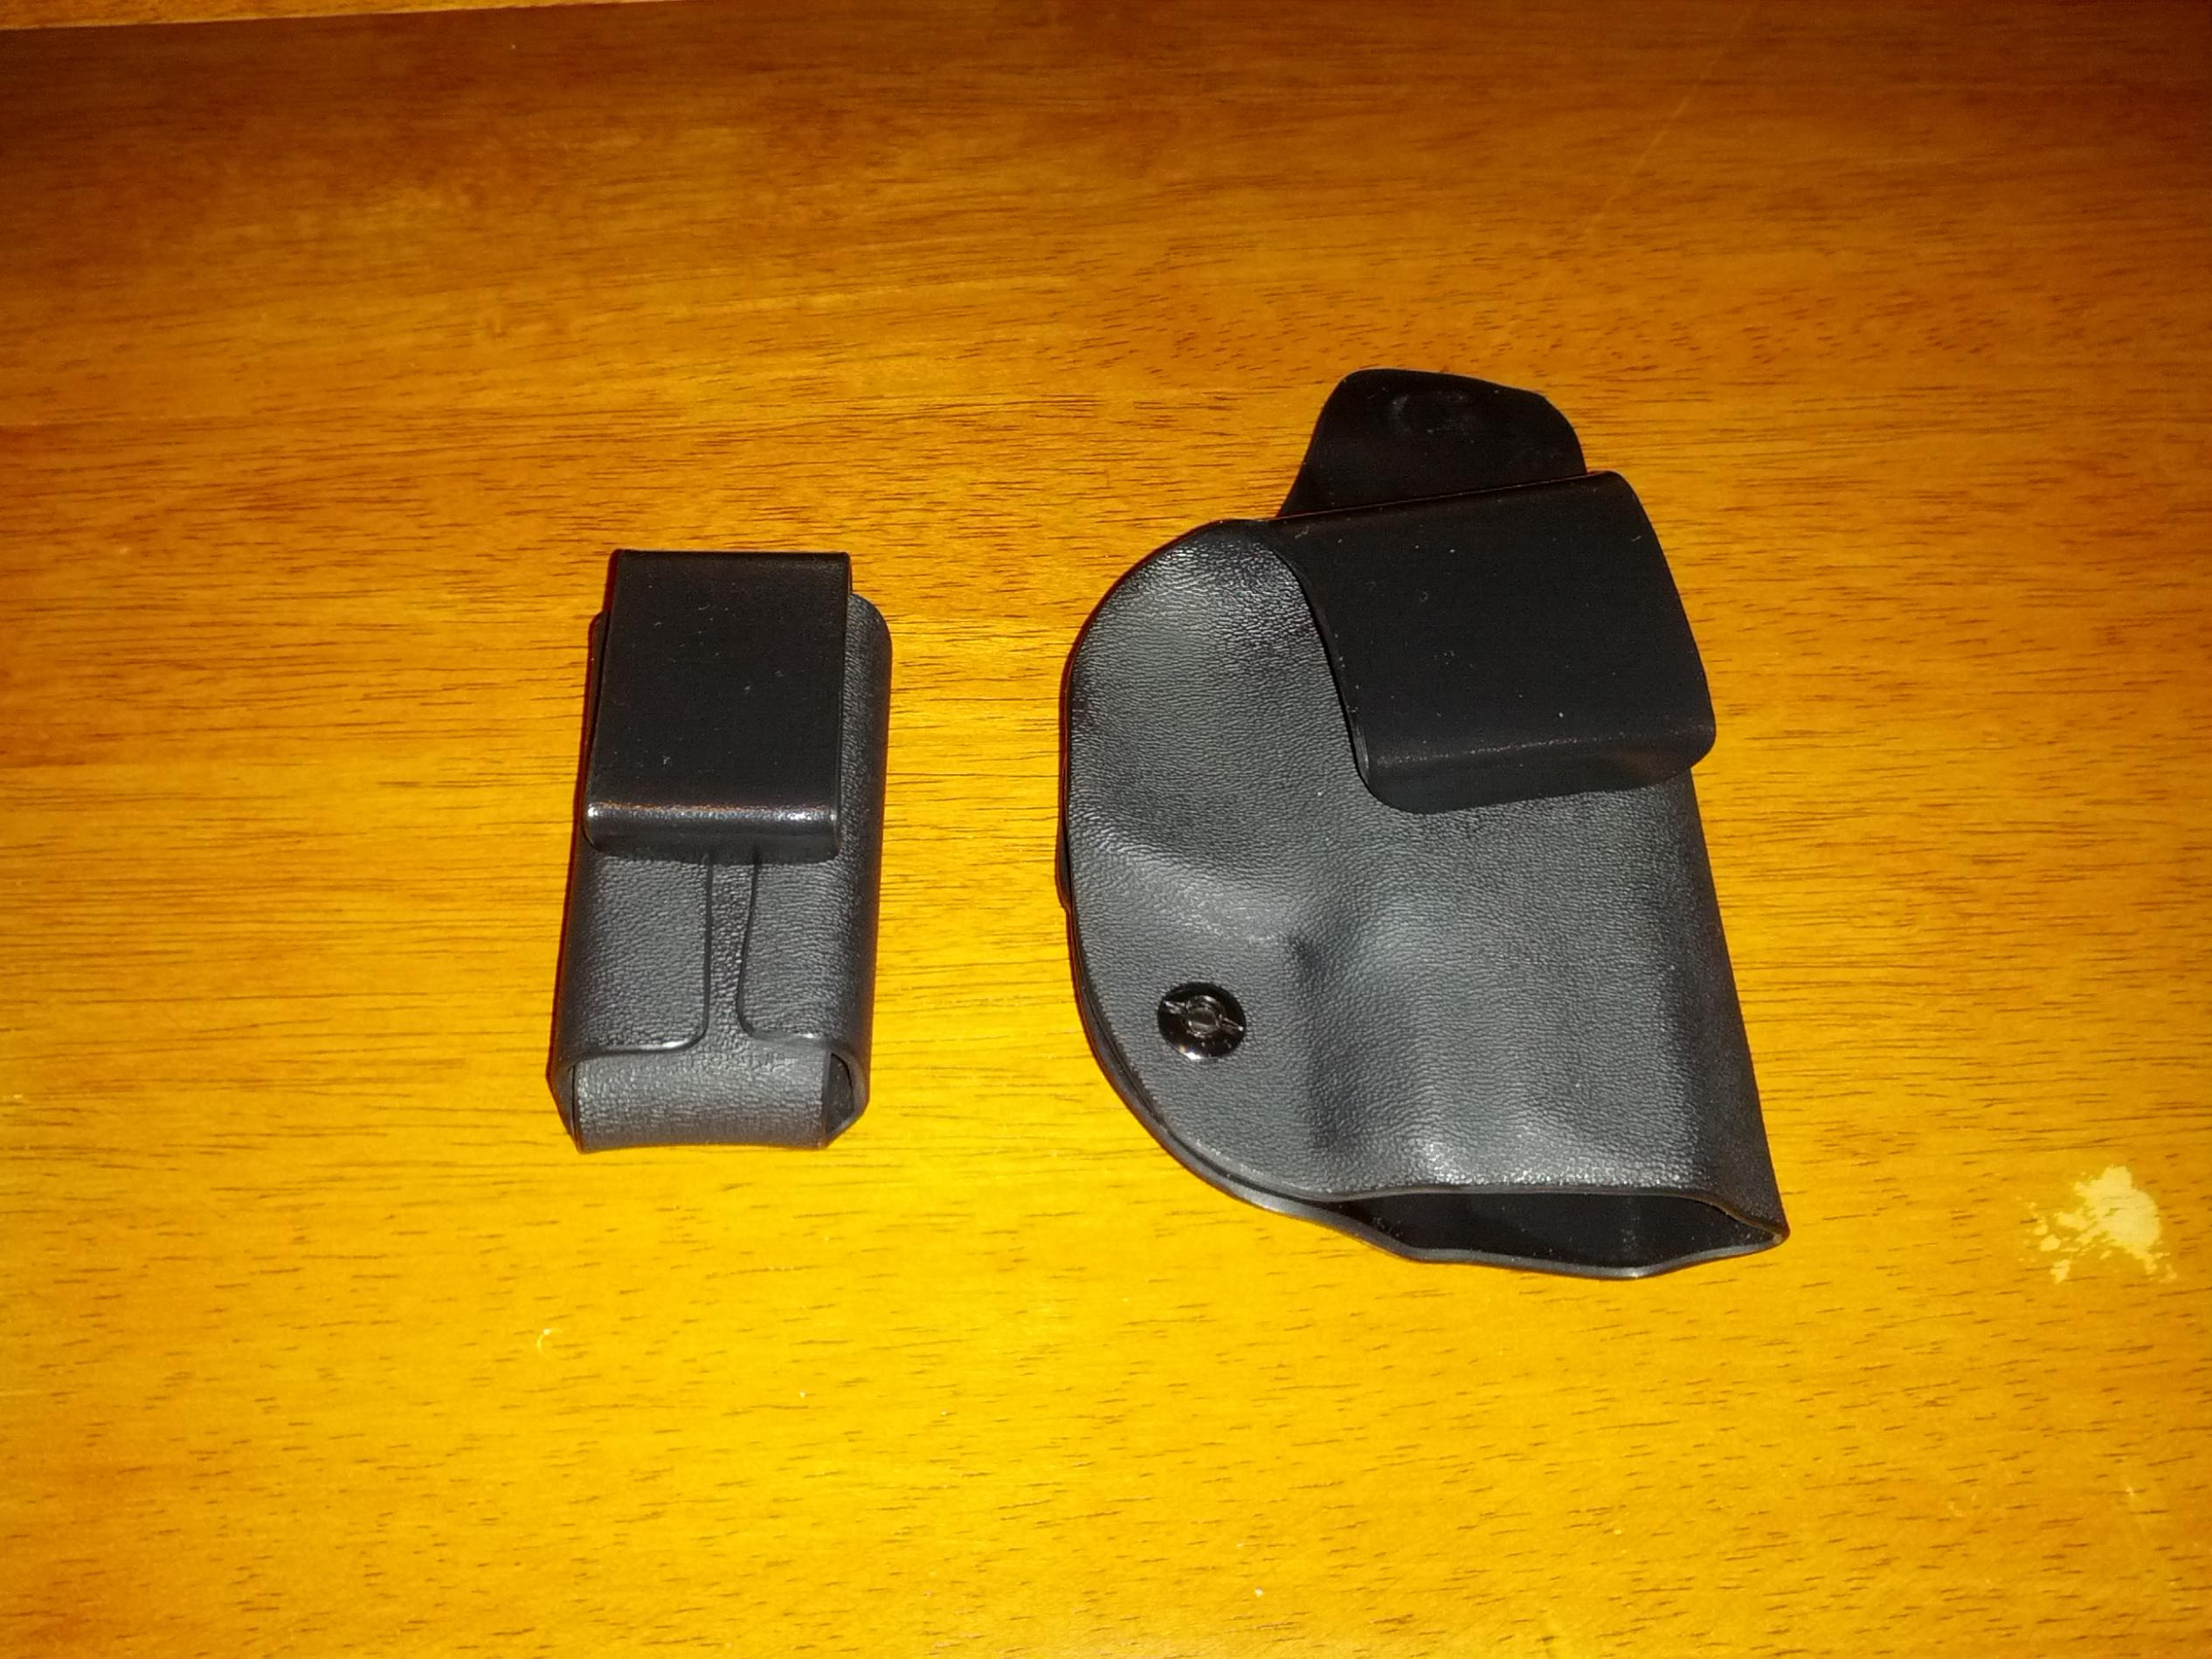 WTS: IWB PJ Holster and Mag Pouch for M&P Shield-img_20130204_204709.jpg